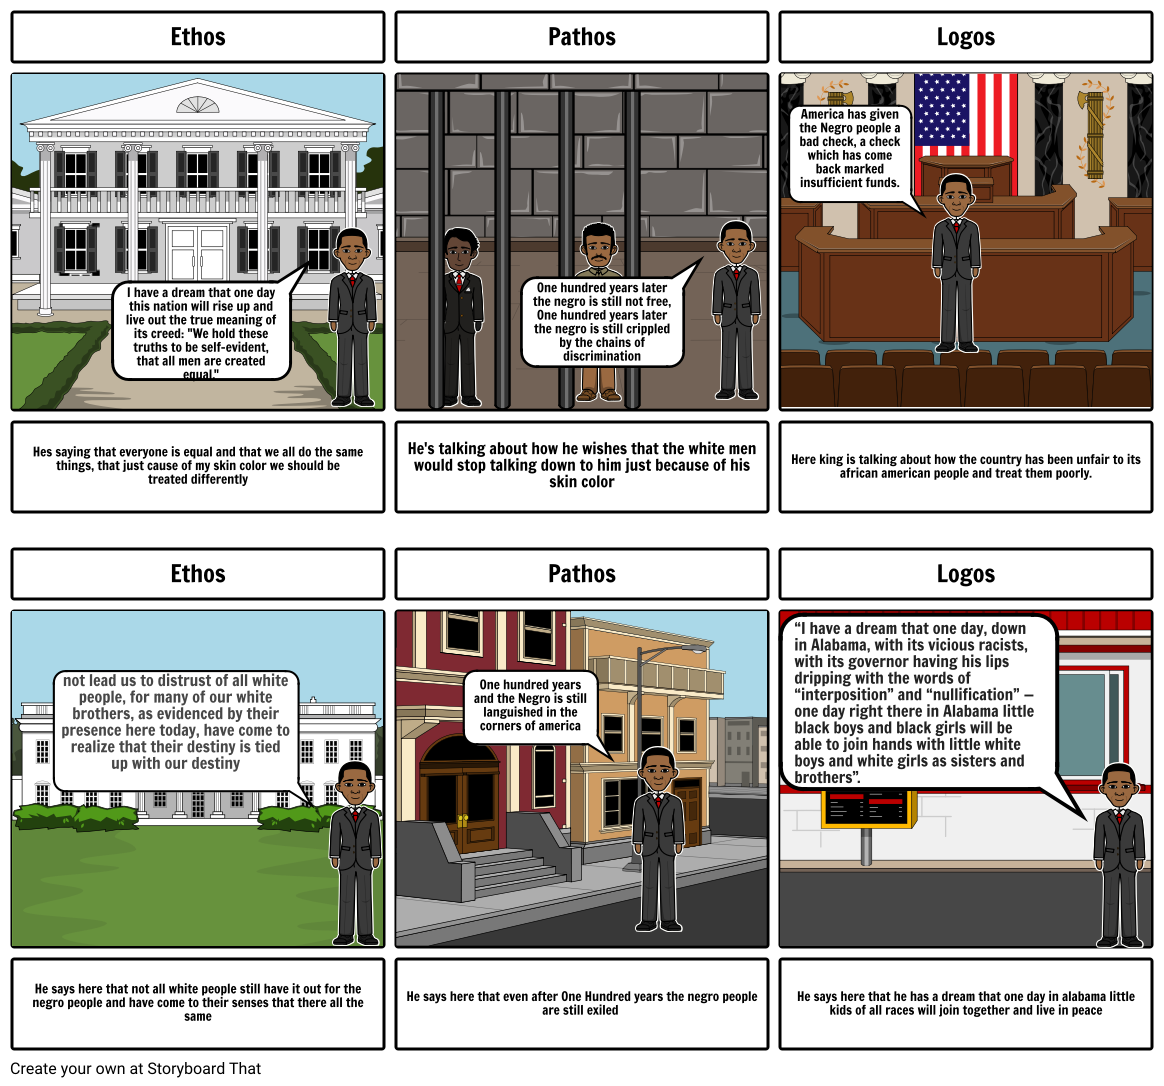 The MLK storyboard